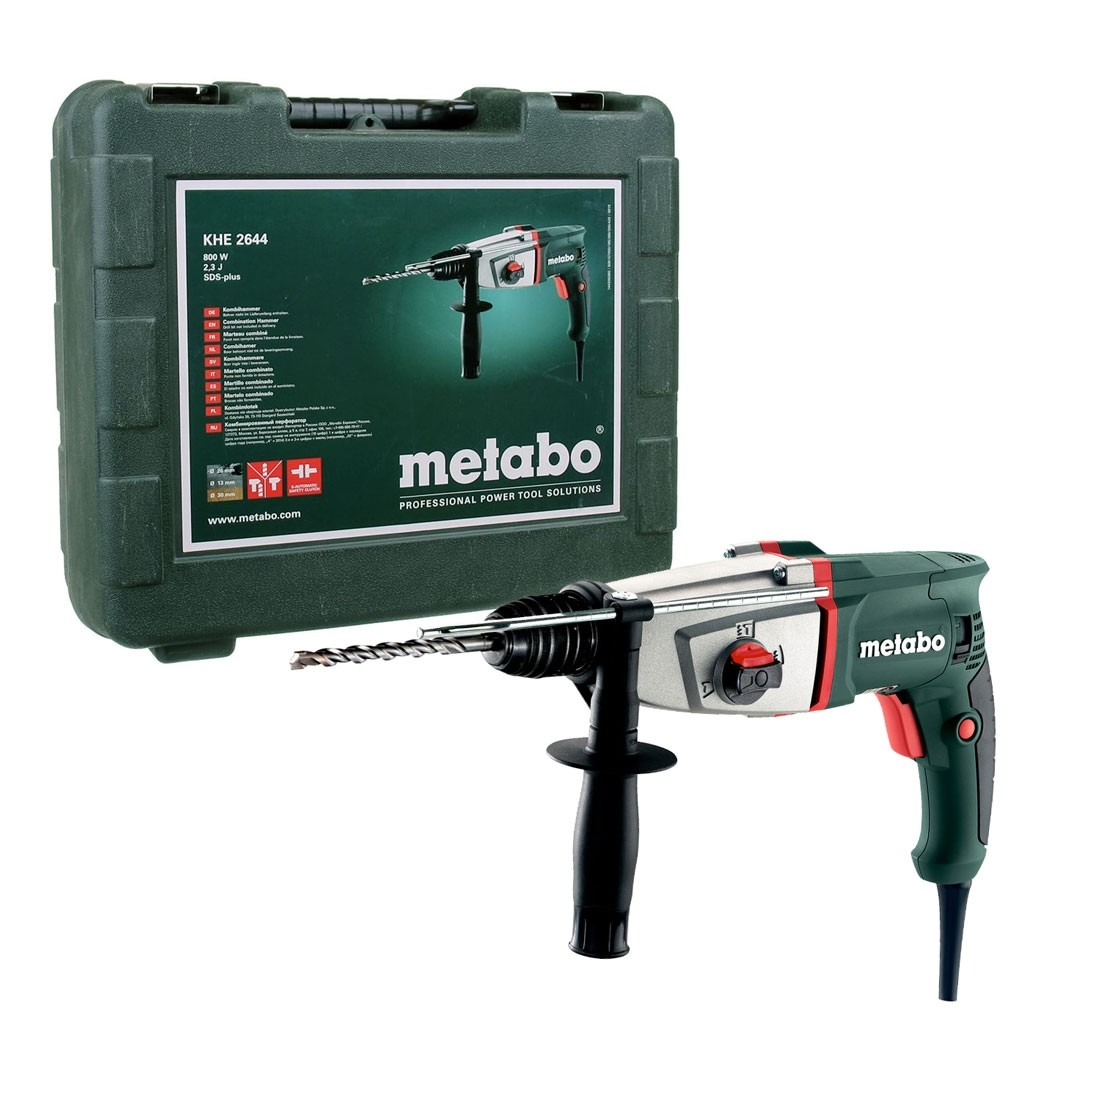 Metabo KHE 2644 SDS+ Plus Combination Hammer Drill